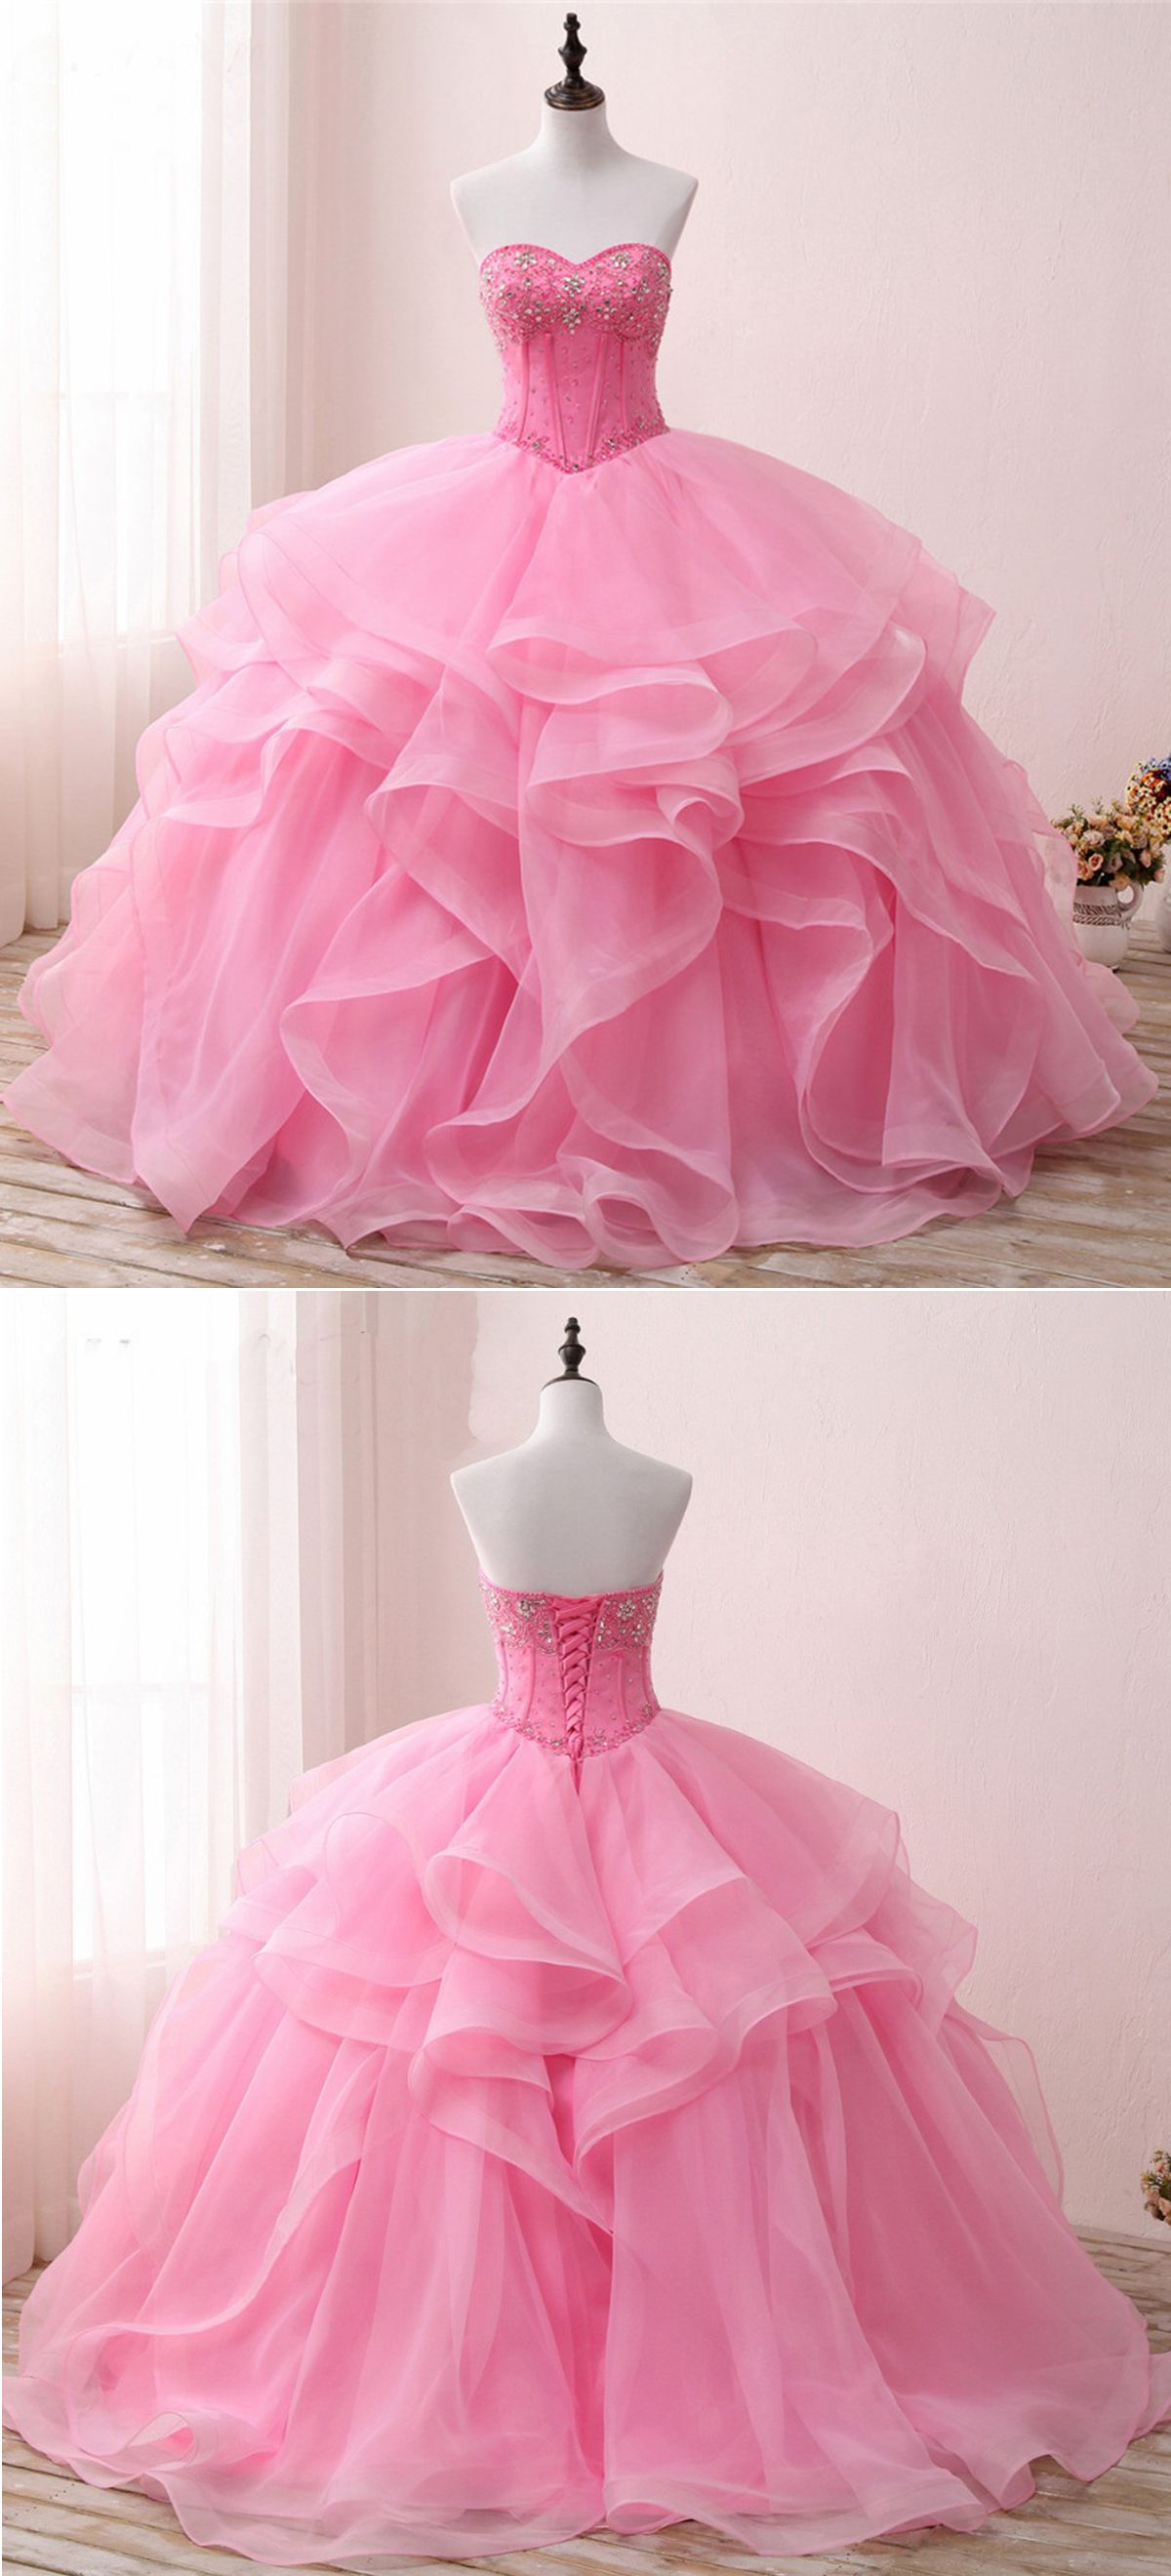 Beaded Pink Tulle Poofy Evening Gown Long Prom Dresses Pinterest